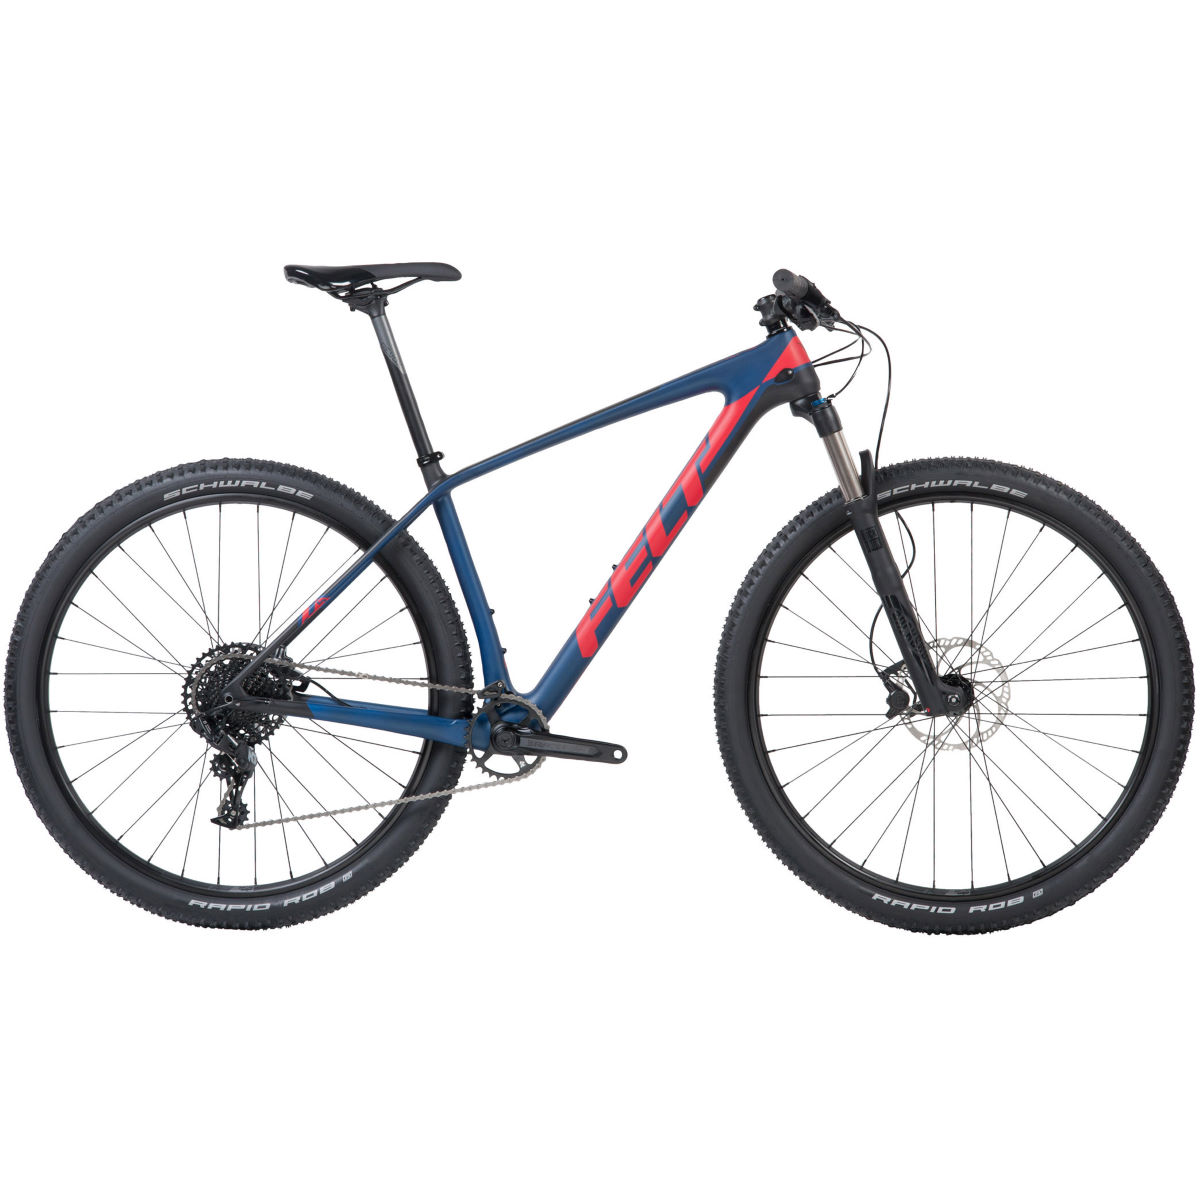 VTT semi-rigide Felt Doctrine 5 XC (carbone, 2018) - 20'' Stock Bike